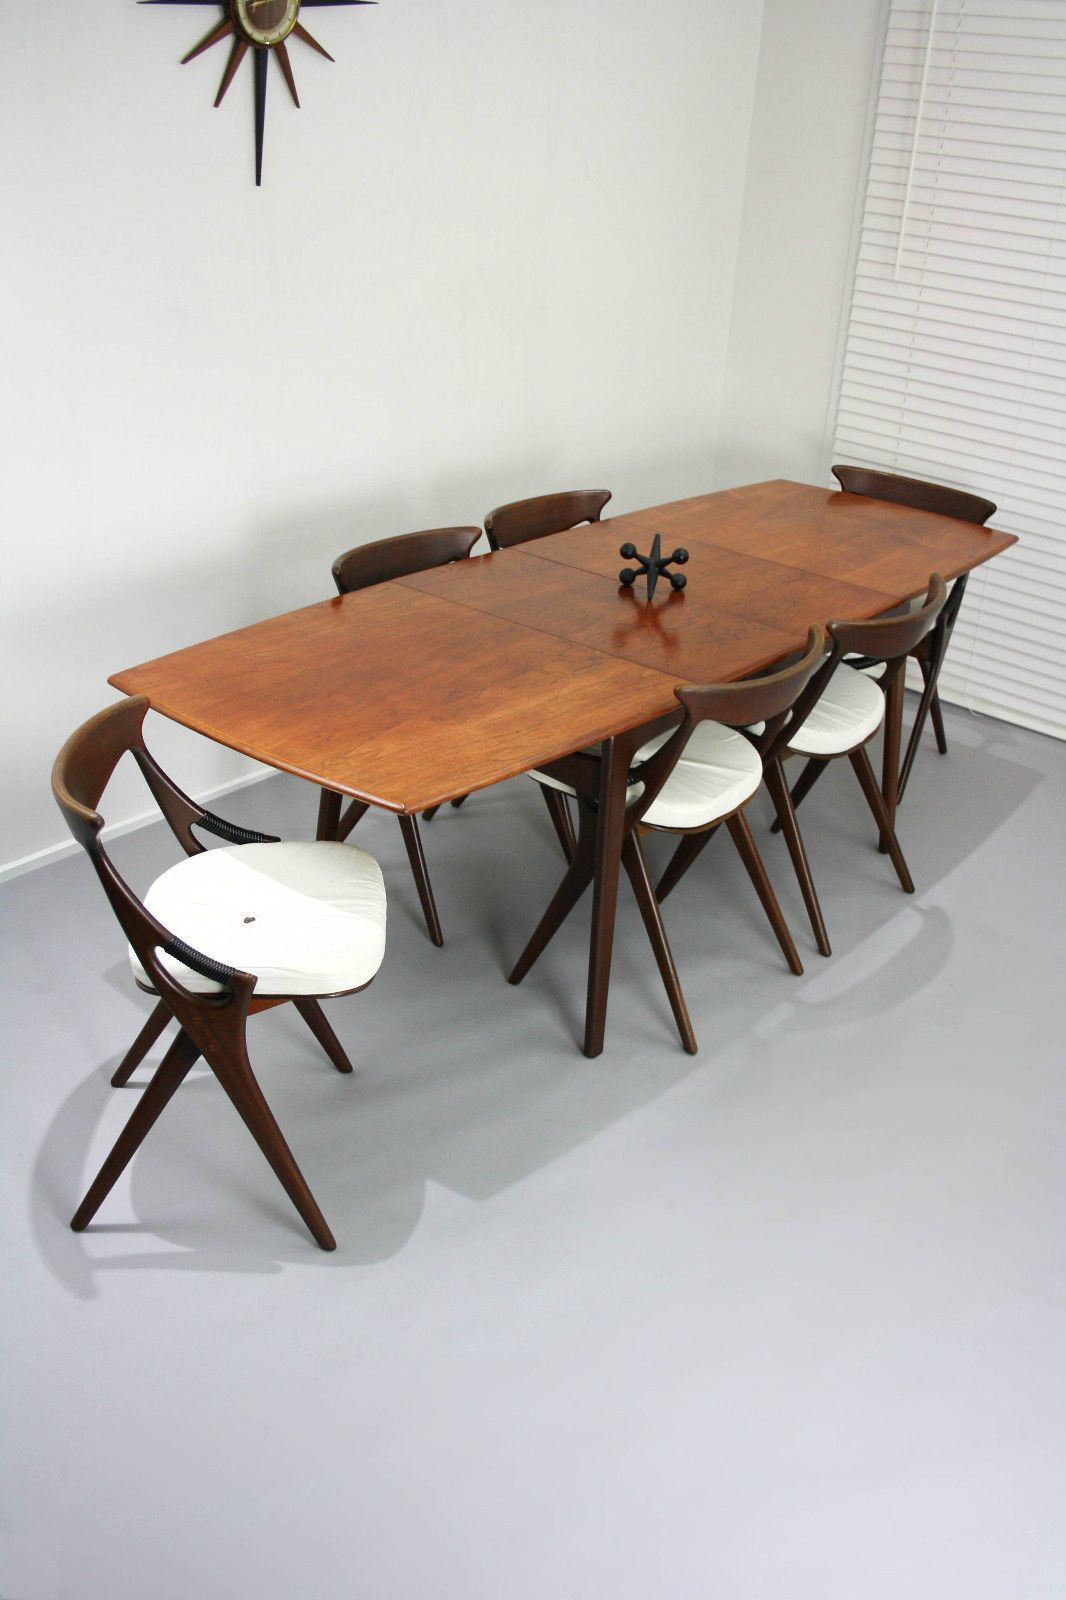 Rare Arne Hovmandolsen Designed For Mogens Kold Mid Century New Scandinavian Teak Dining Room Furniture Design Decoration